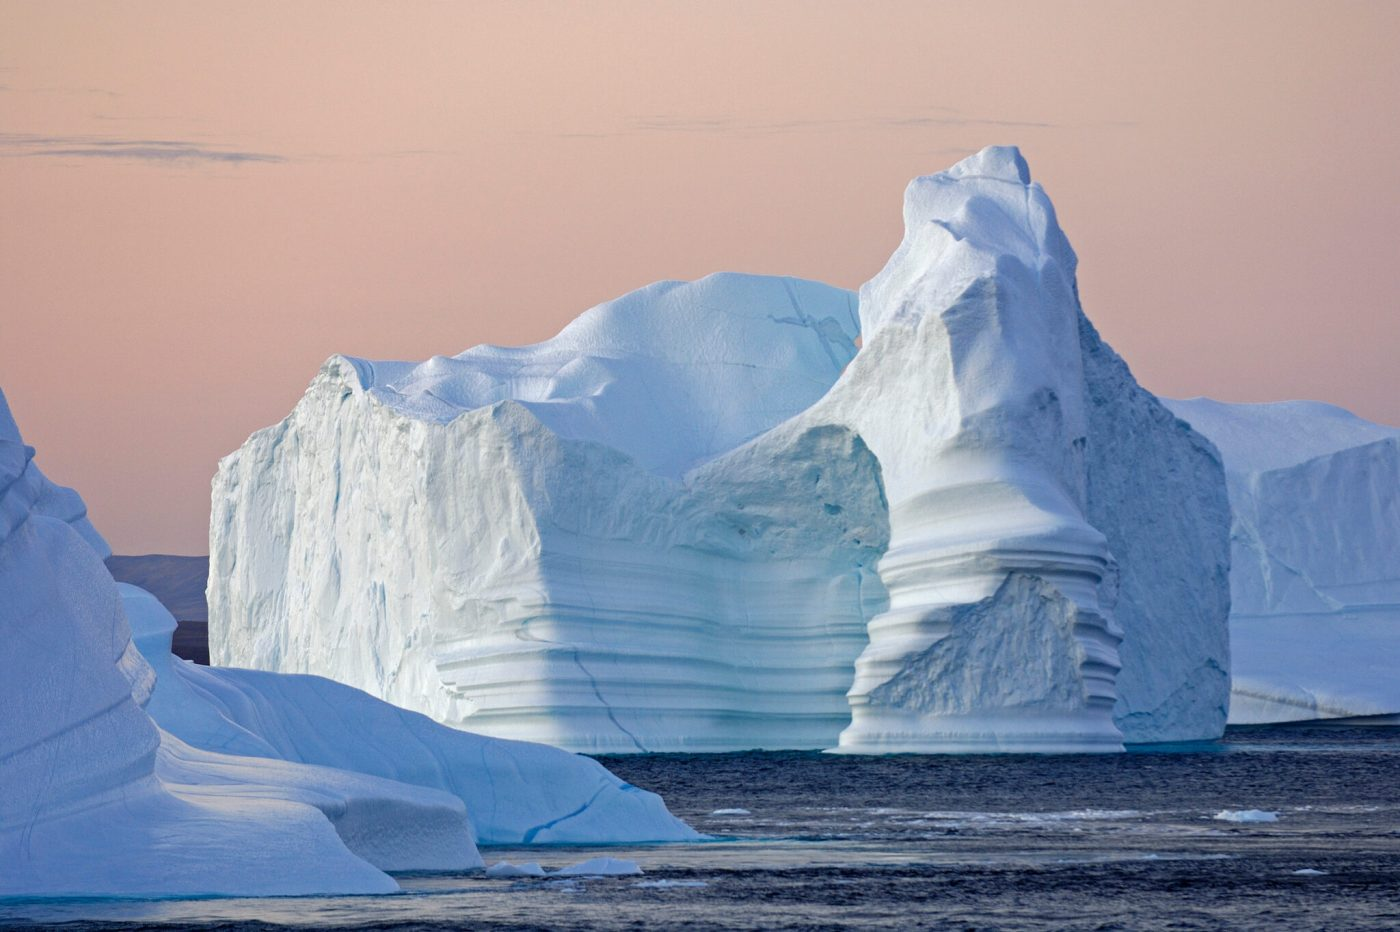 Fantasy-like iceberg in Greenland, by Magnus Elander